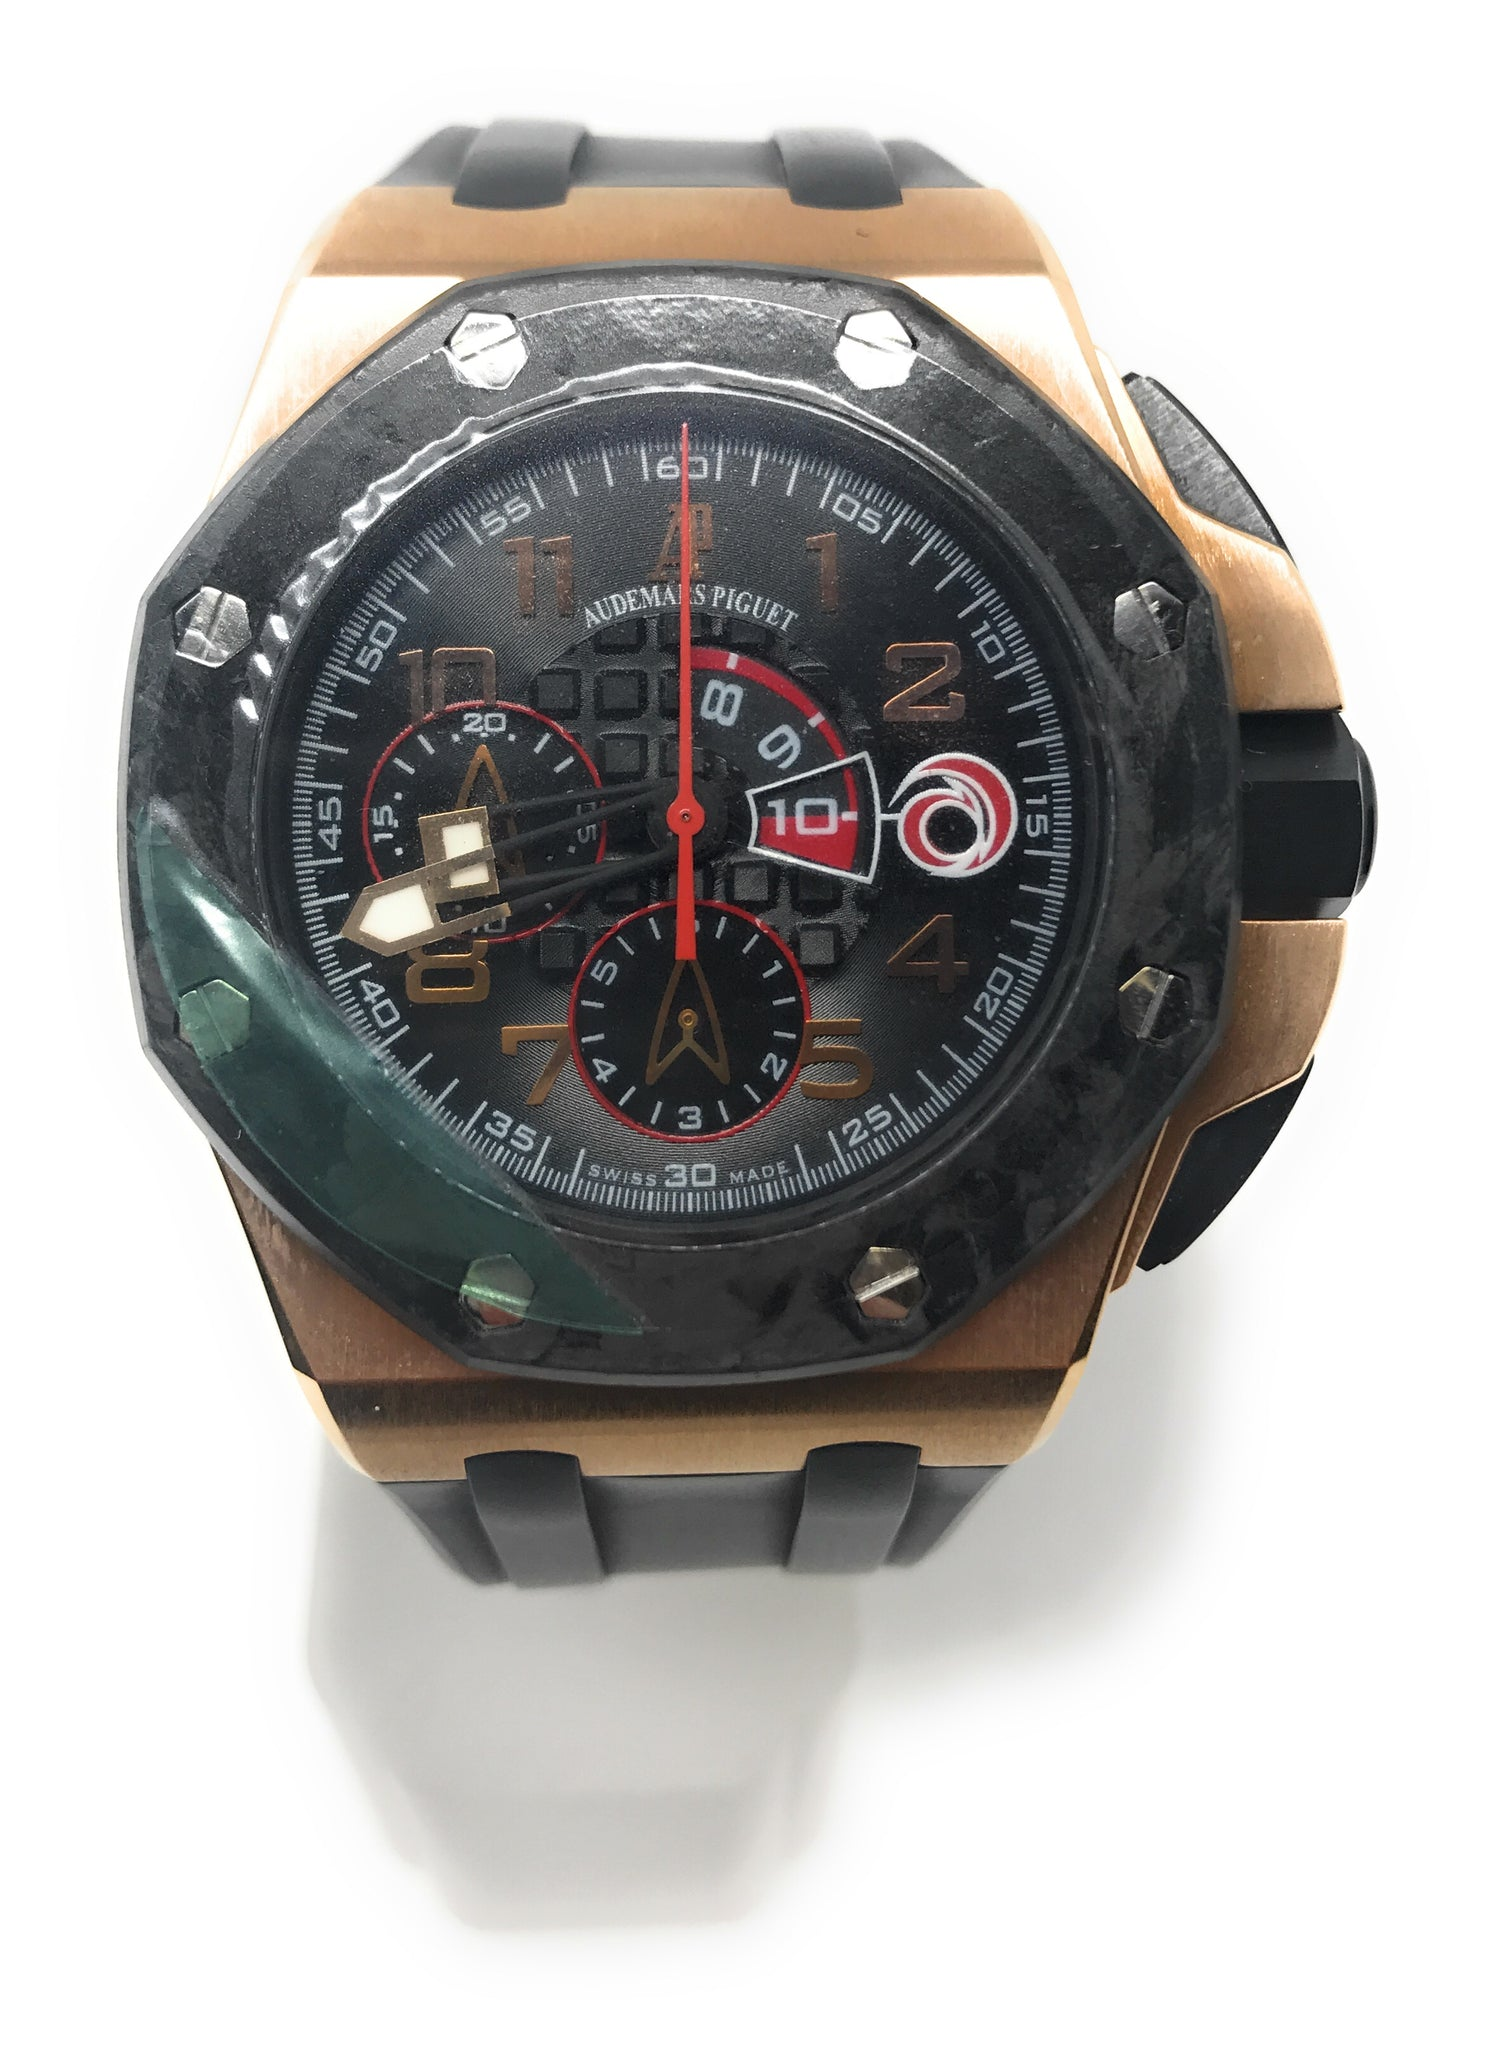 Audemars Piguet Royal Oak Offshore Team Alinghi and 18k Rose Gold Limited Edition